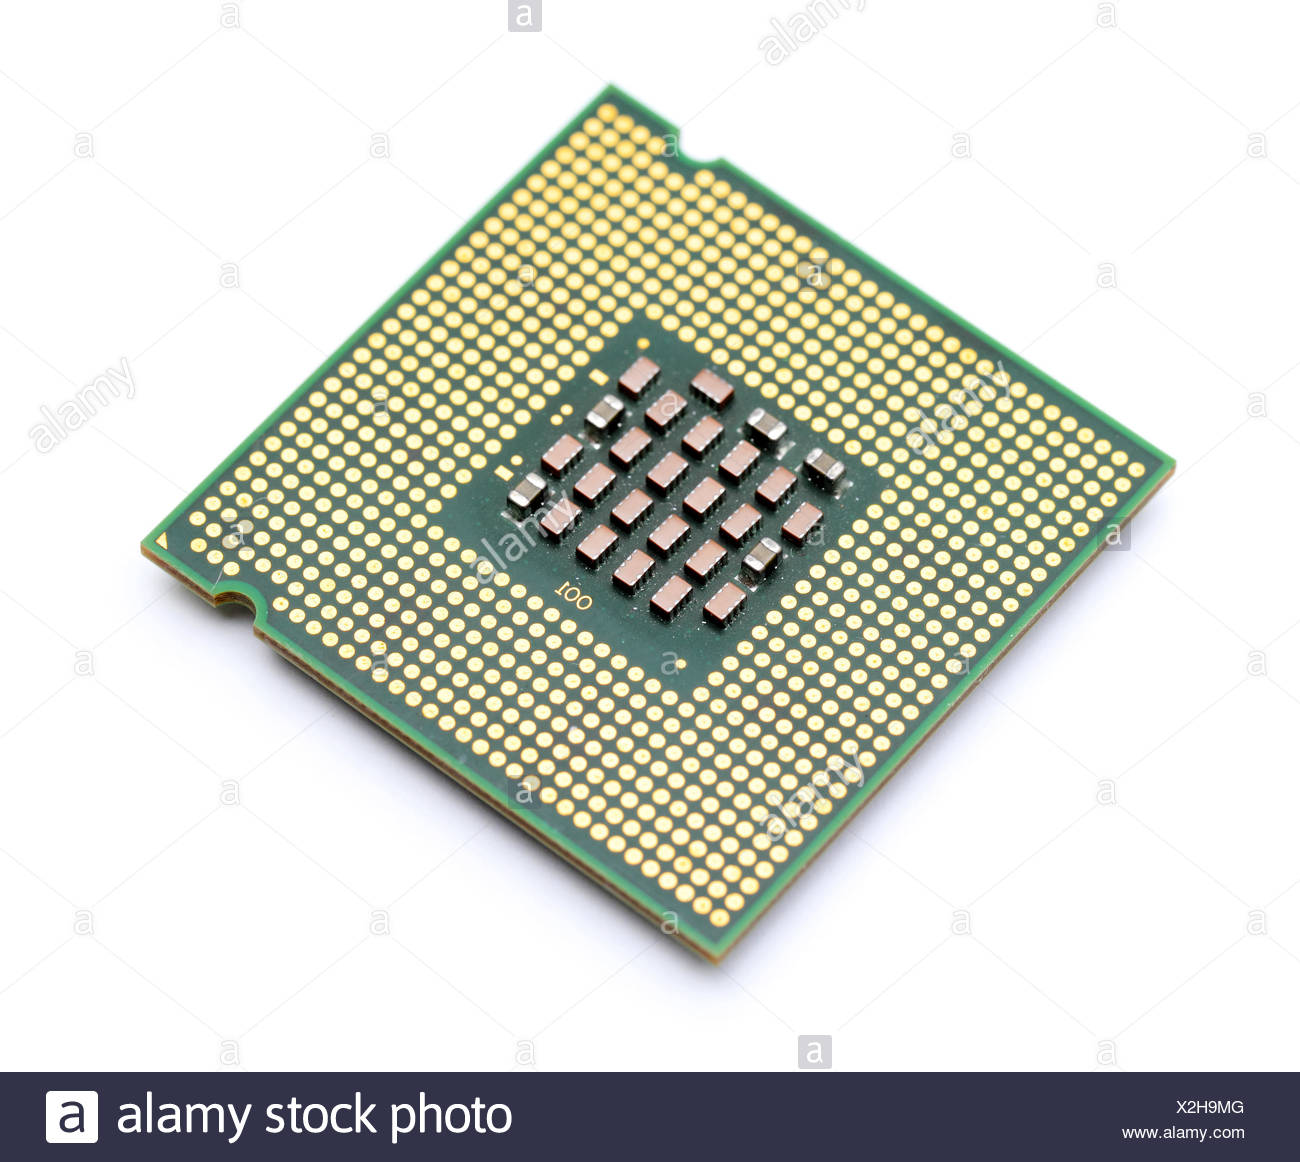 PC computers computer - Stock Image